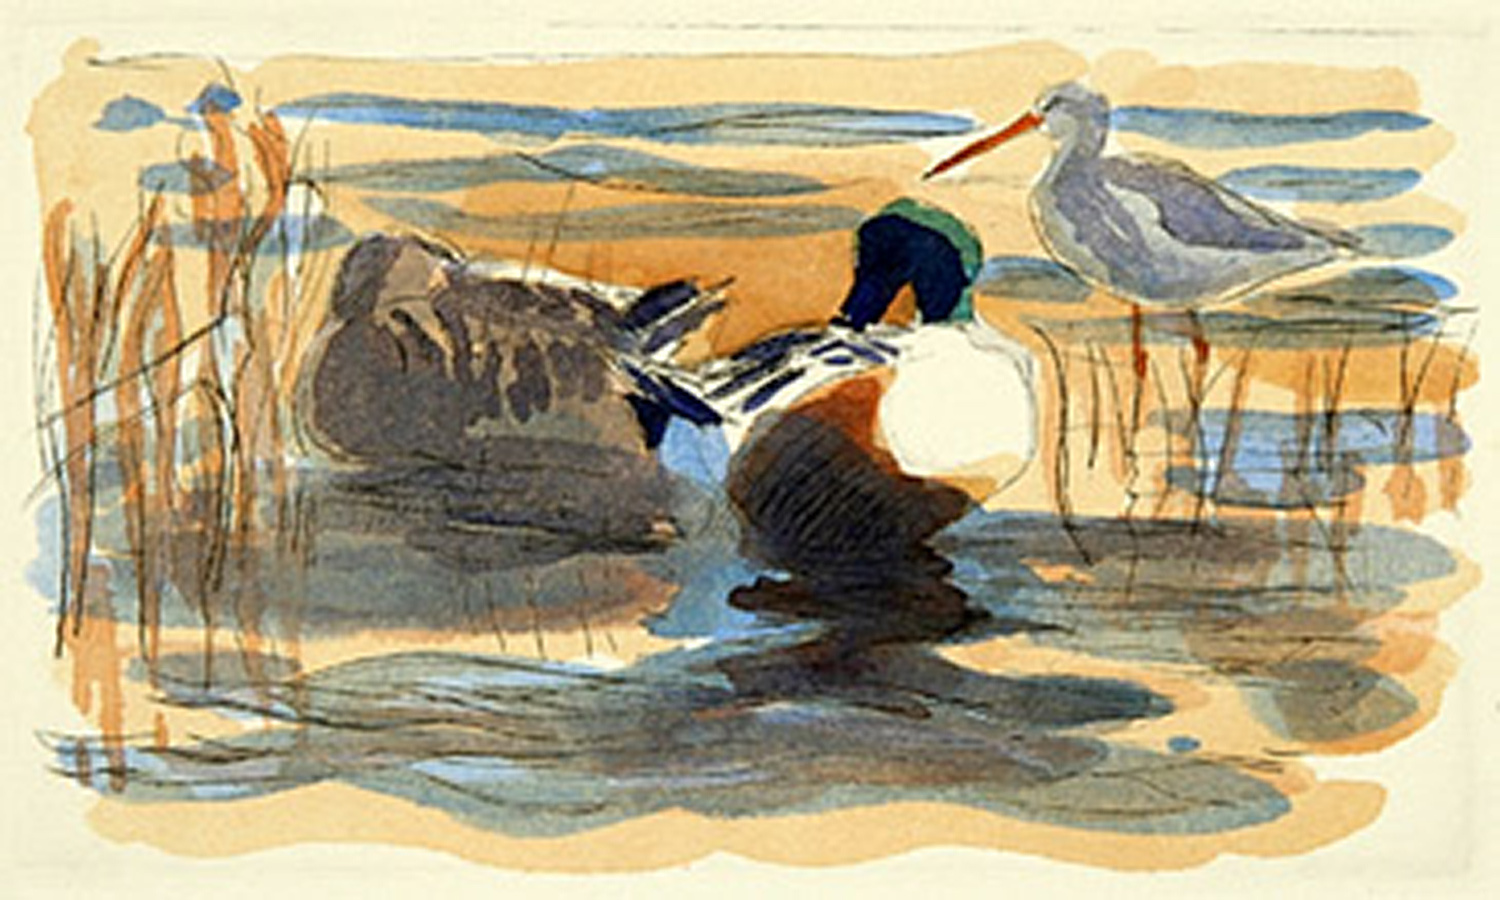 Shovelers & Spotted Redshank by Robert Greenhalf